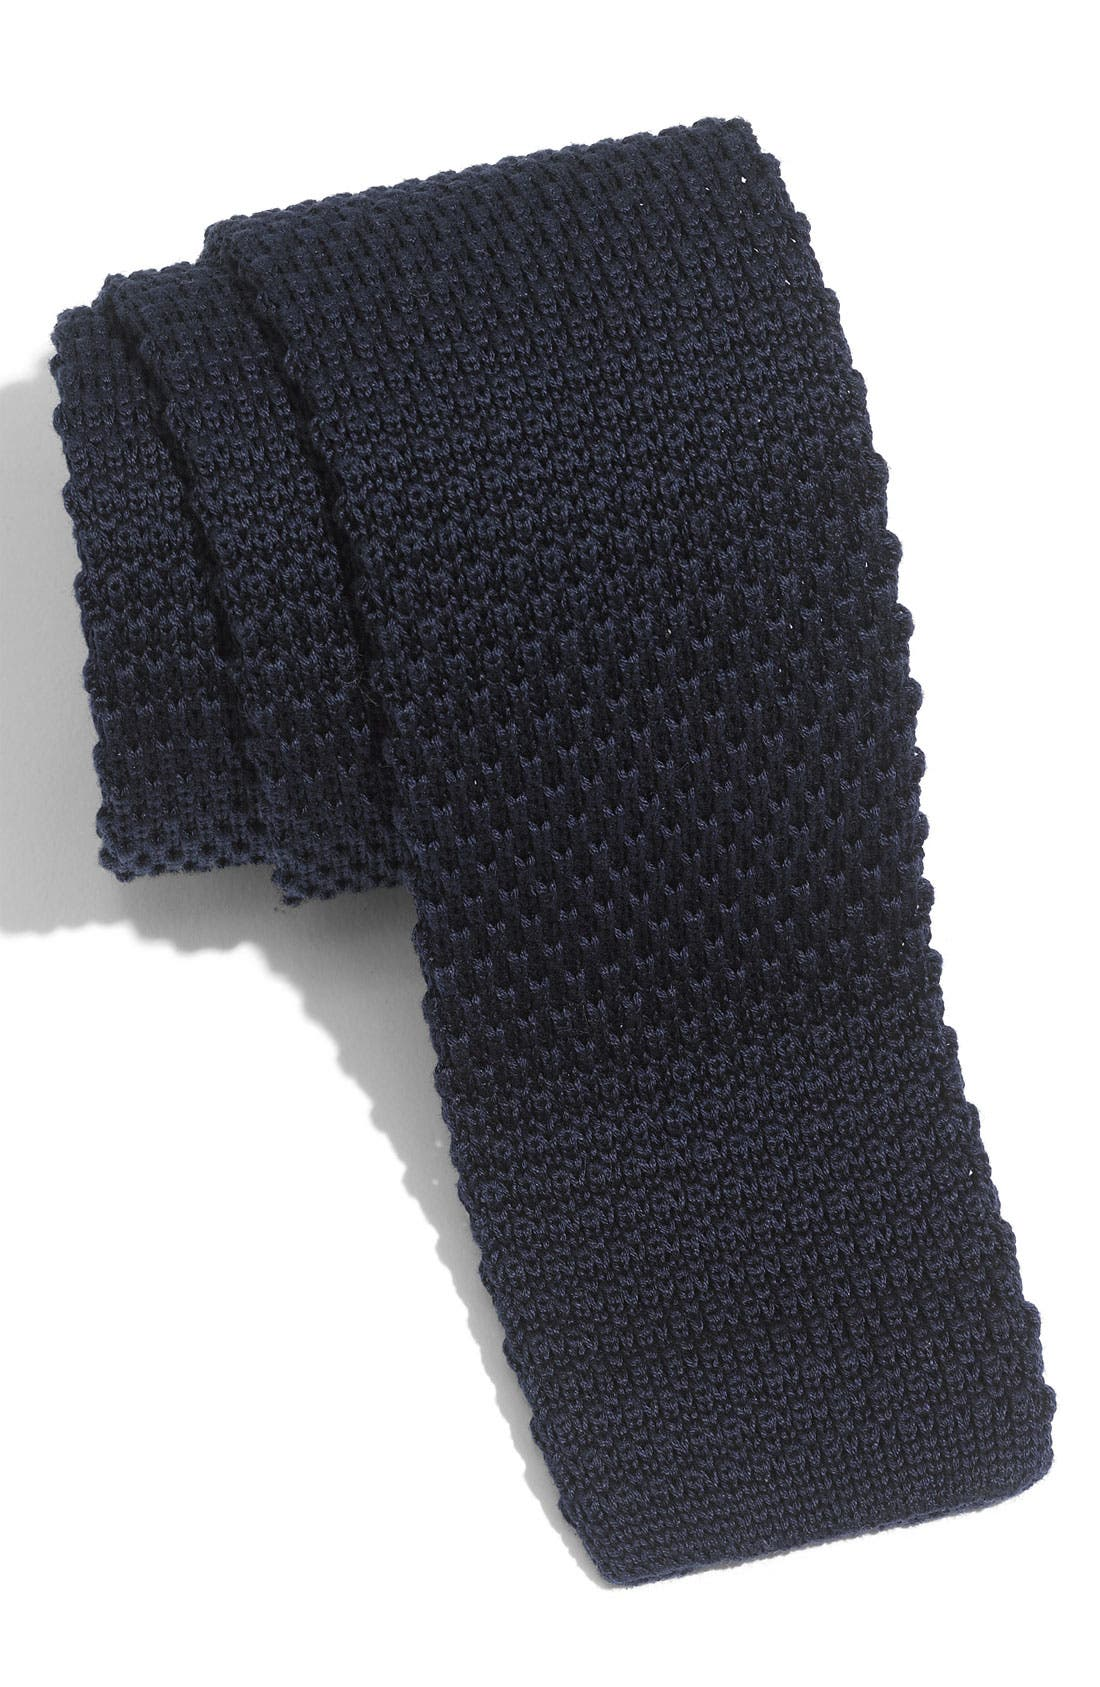 Alternate Image 1 Selected - 1901 Skinny Knit Tie